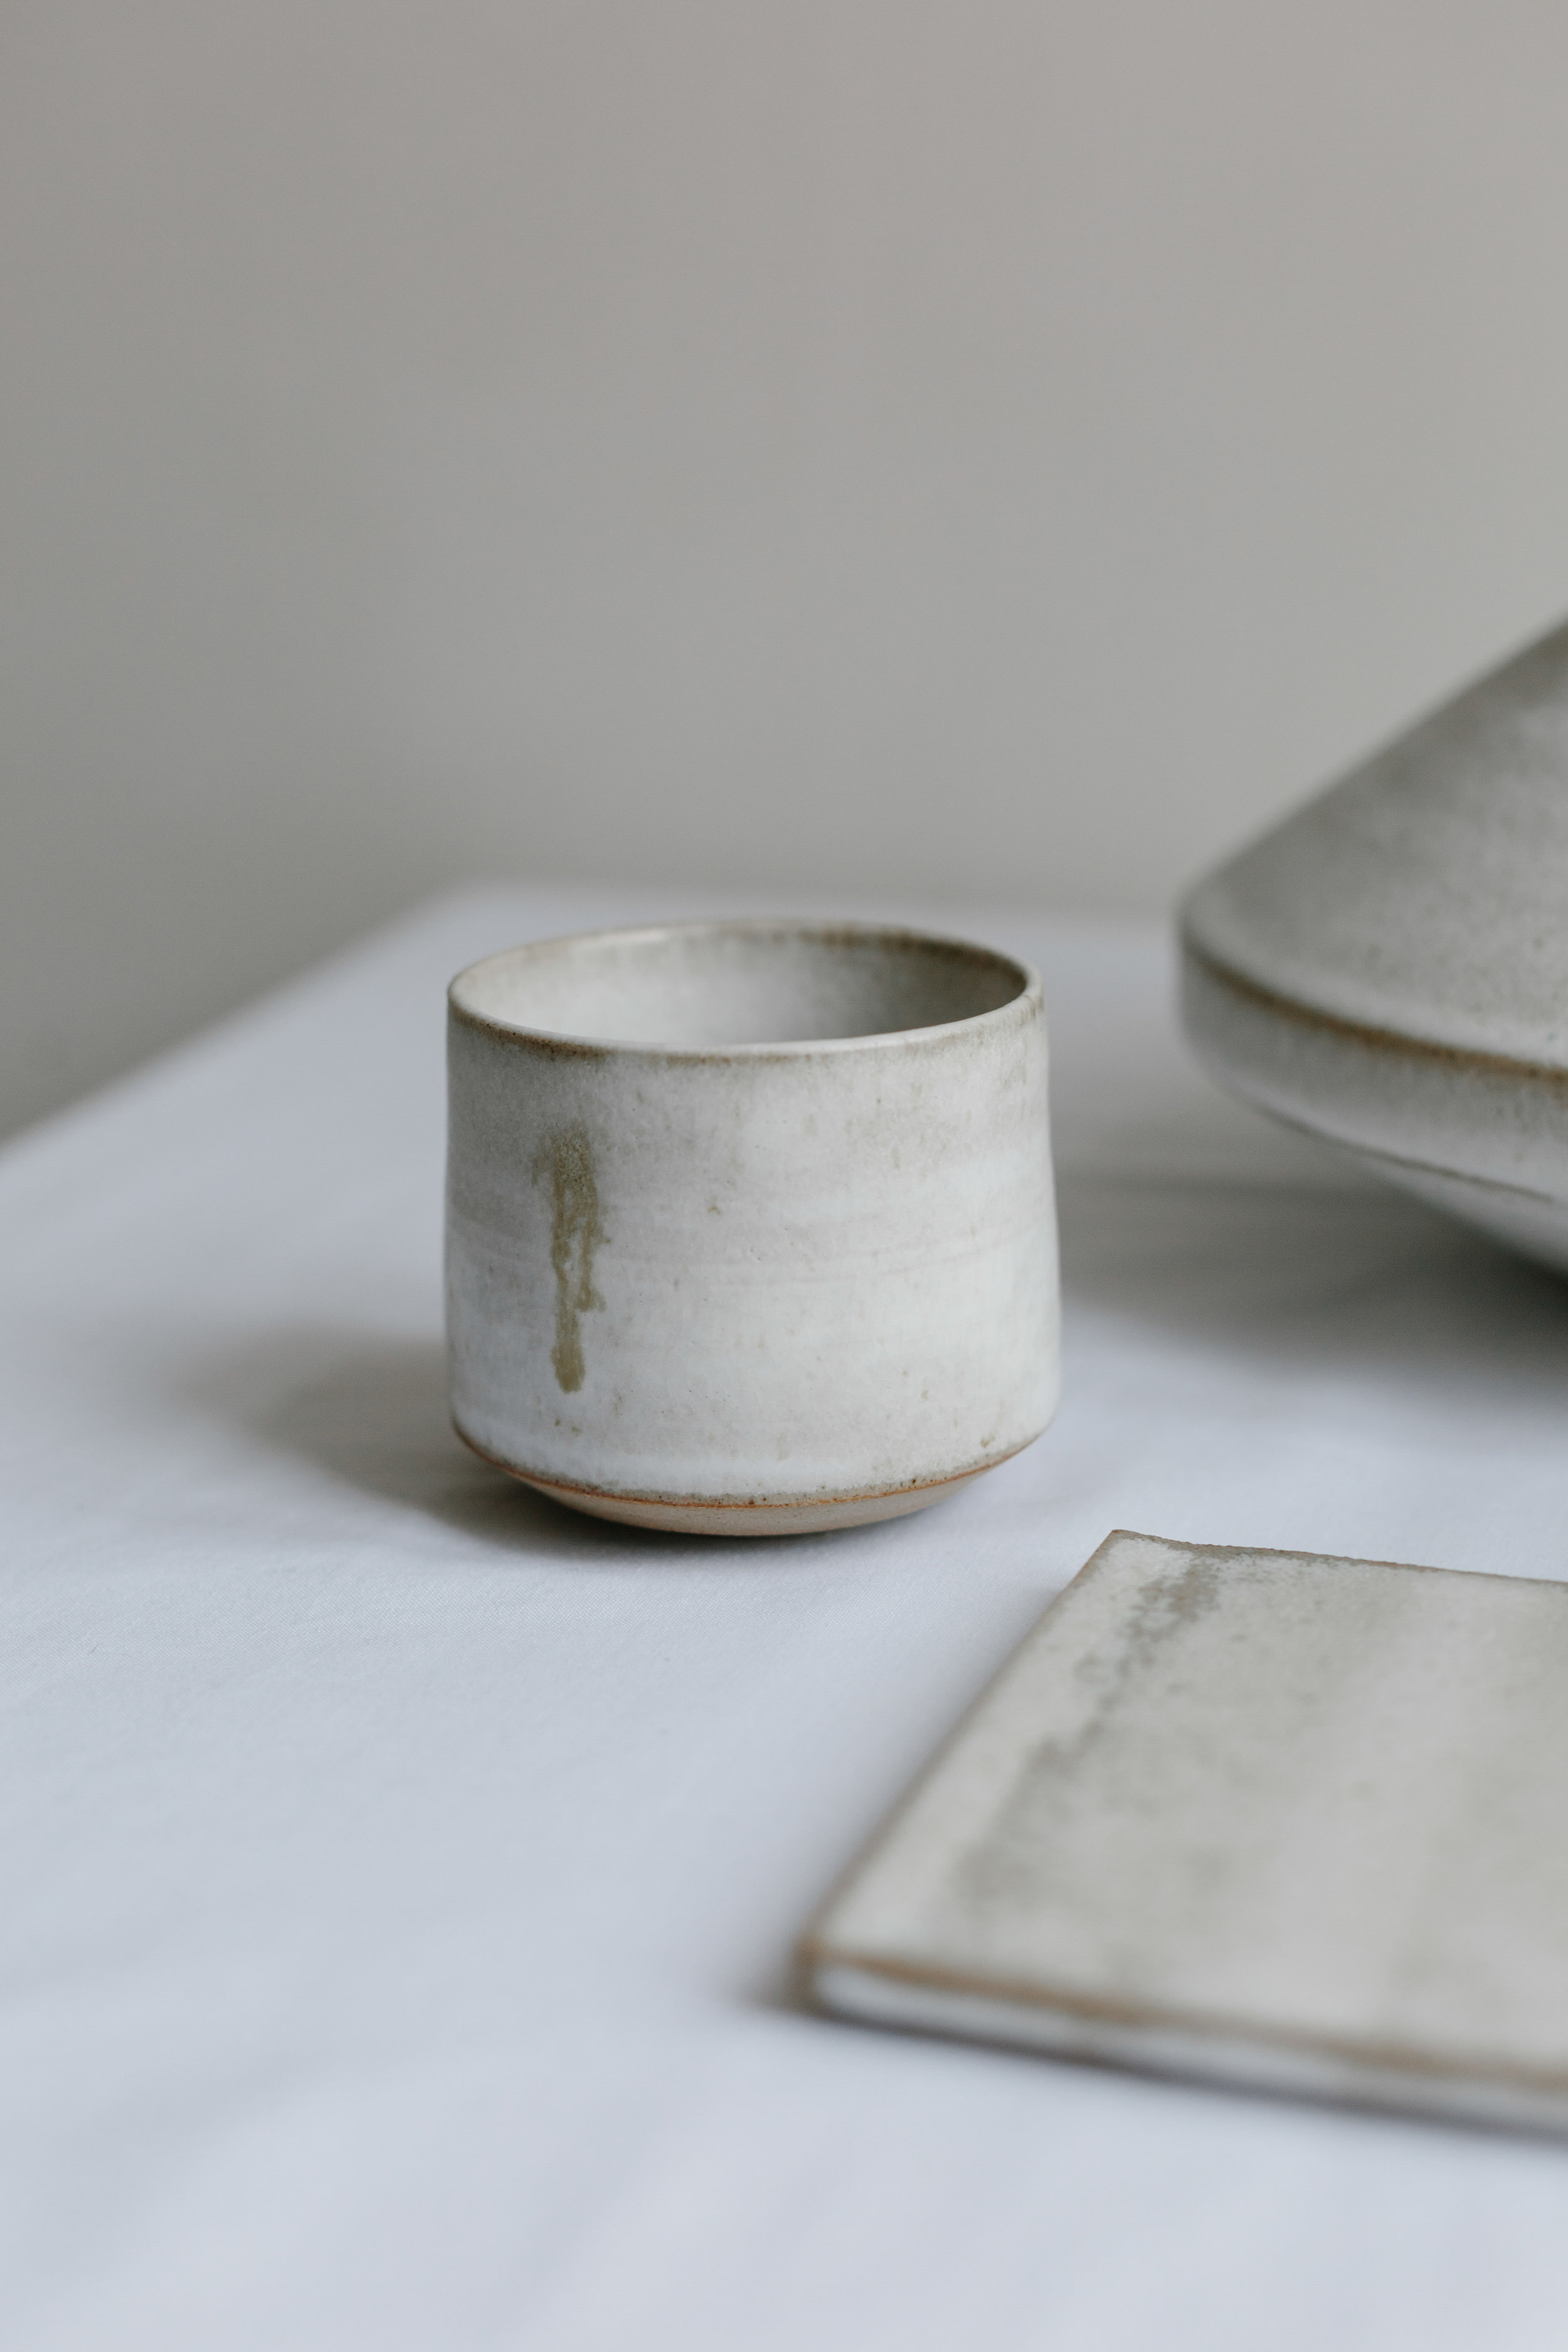 Copy of Kitchen Table - Cup - Oyster Shell Glaze on Stoneware and Porcelain - £55.00 - Maria Bell Photography.jpg